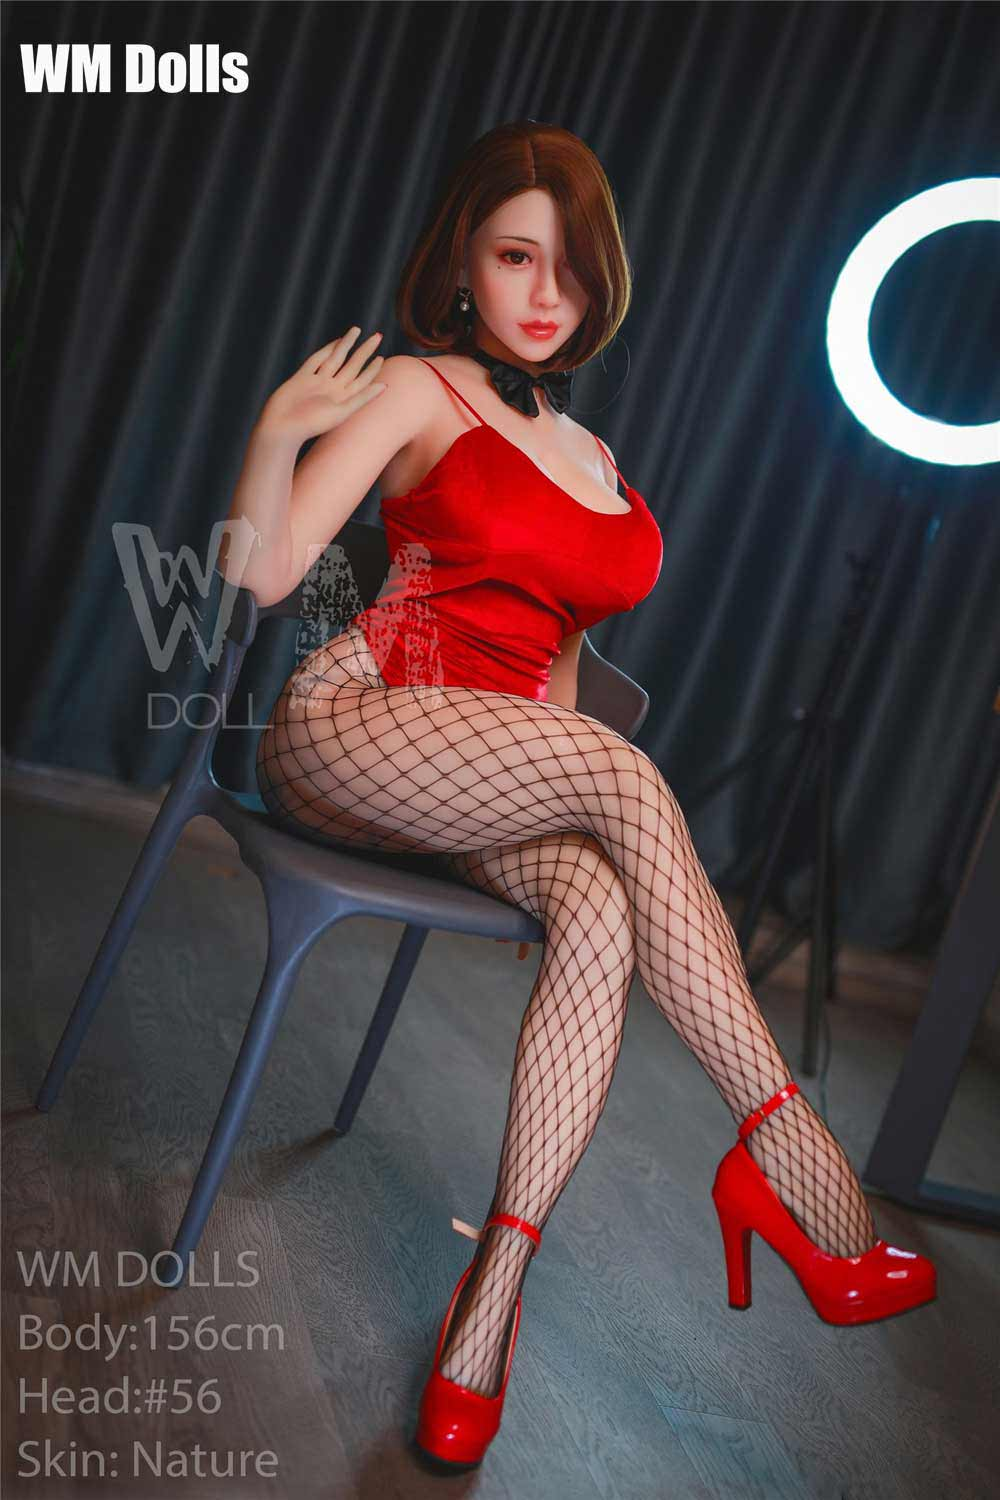 Big breasted sex doll with crossed legs